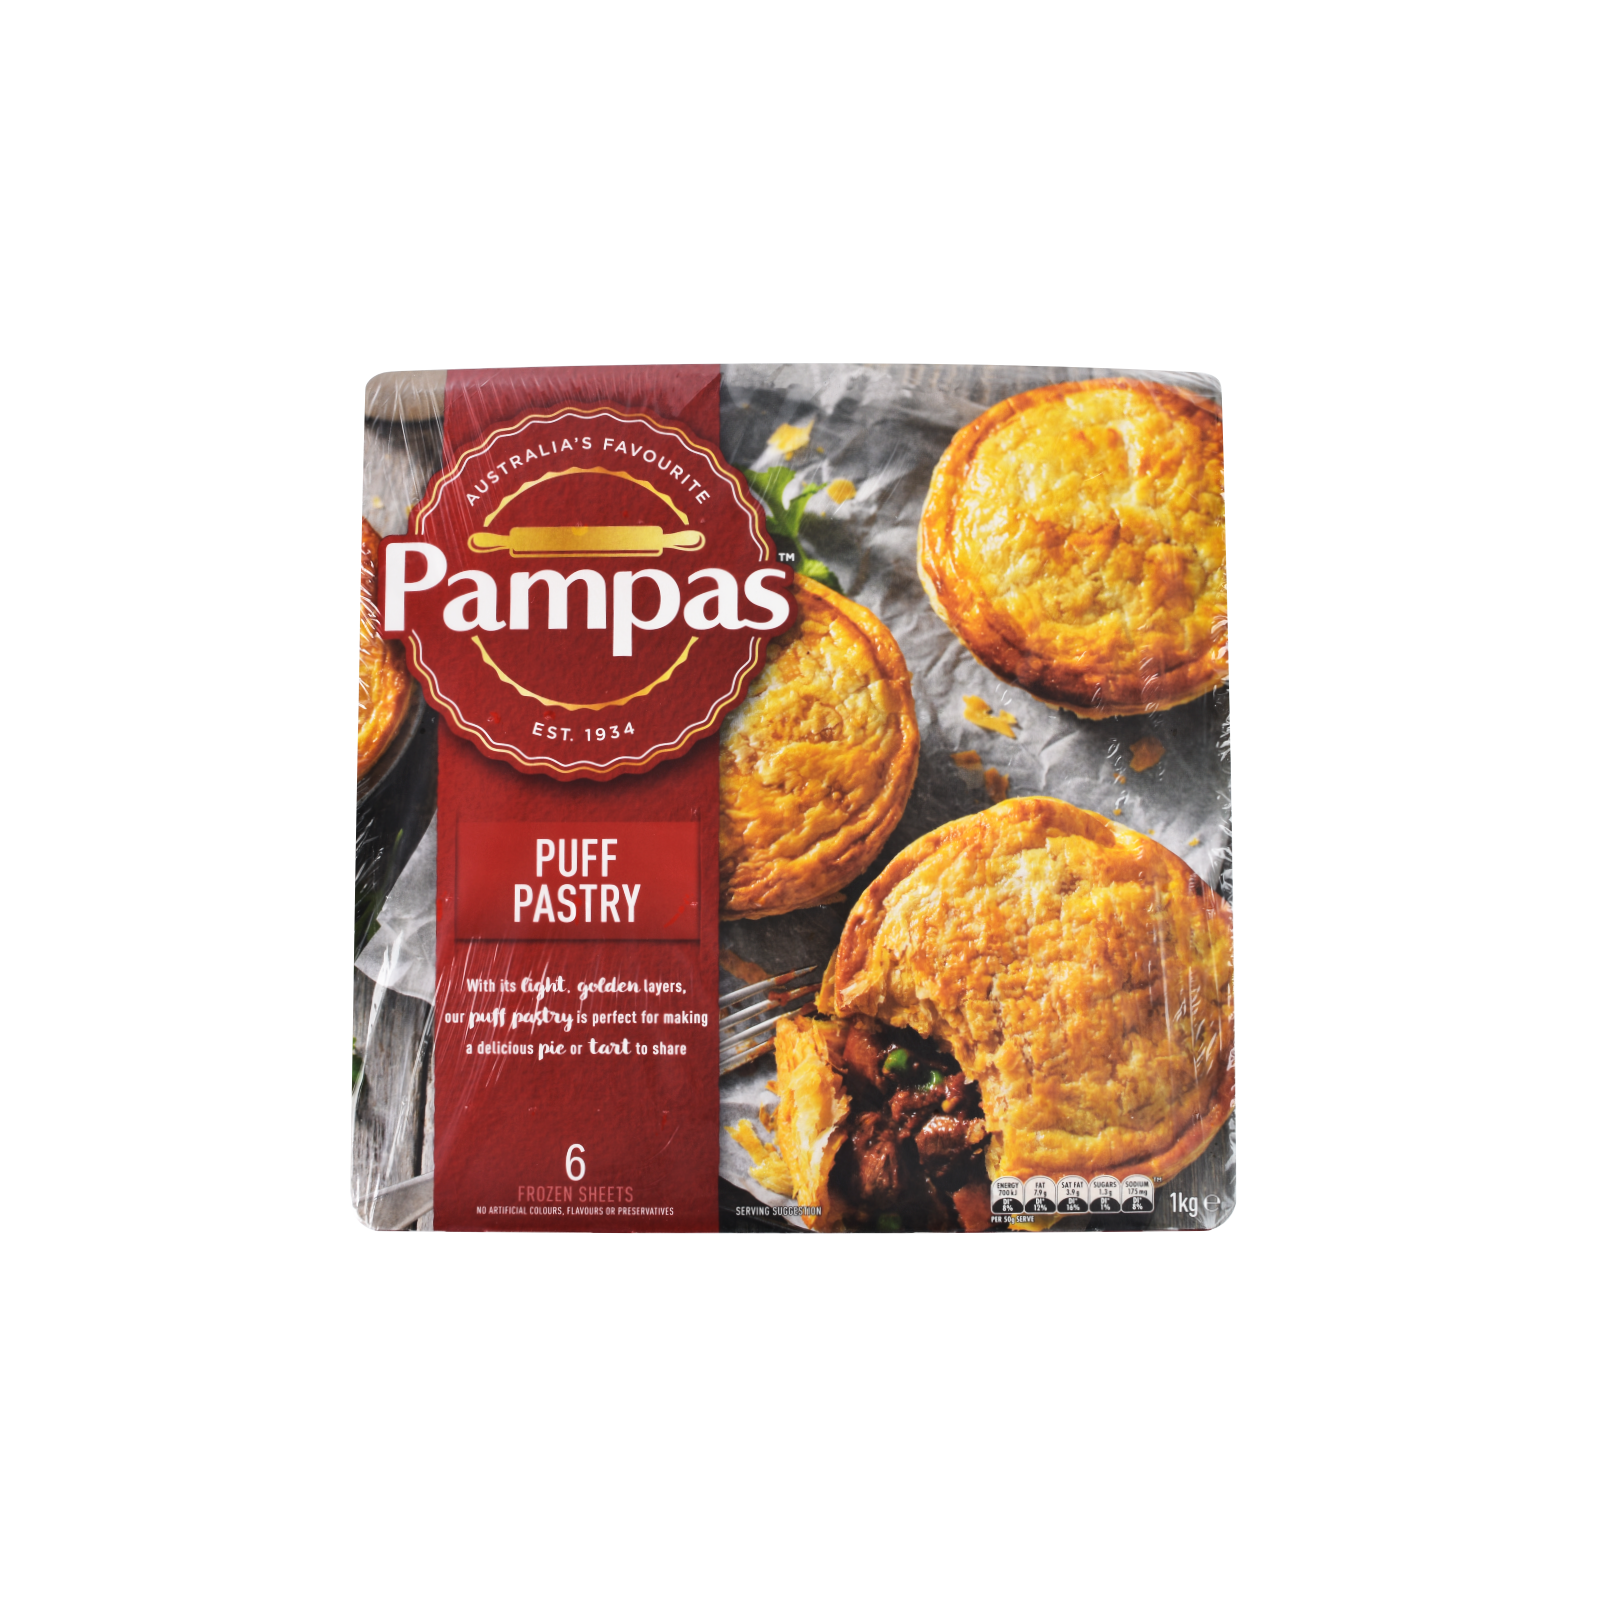 Pampas Puff Pastry 1KG.png